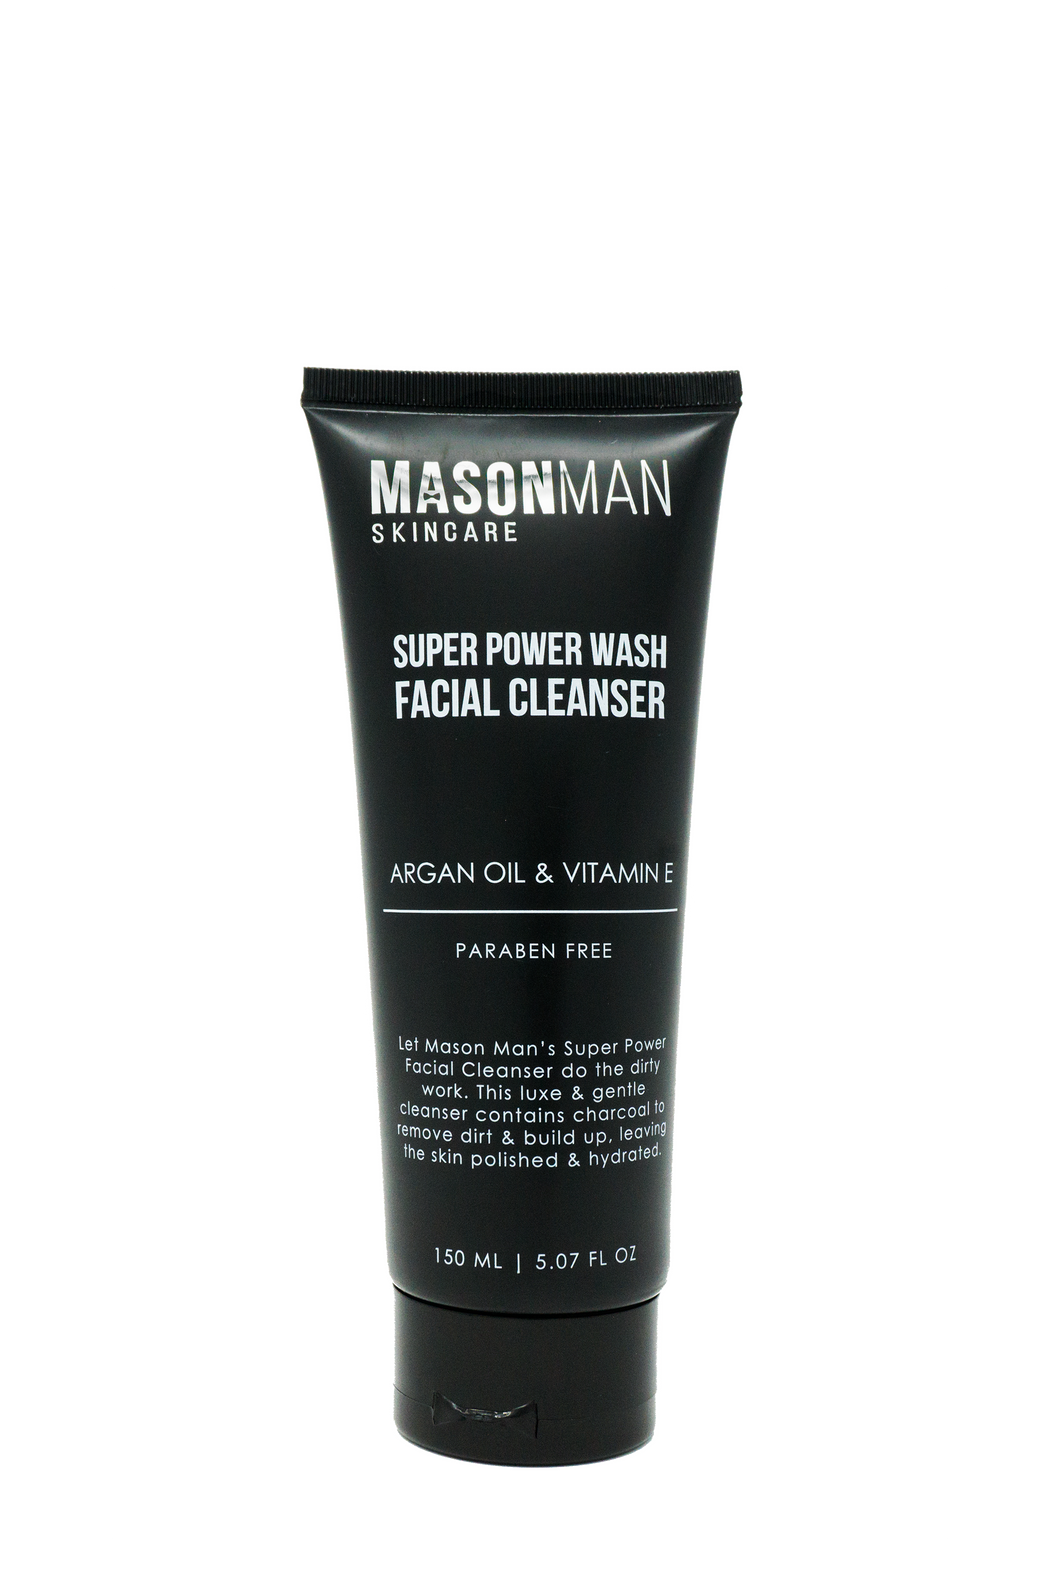 SUPER POWER WASH FACIAL CLEANSER